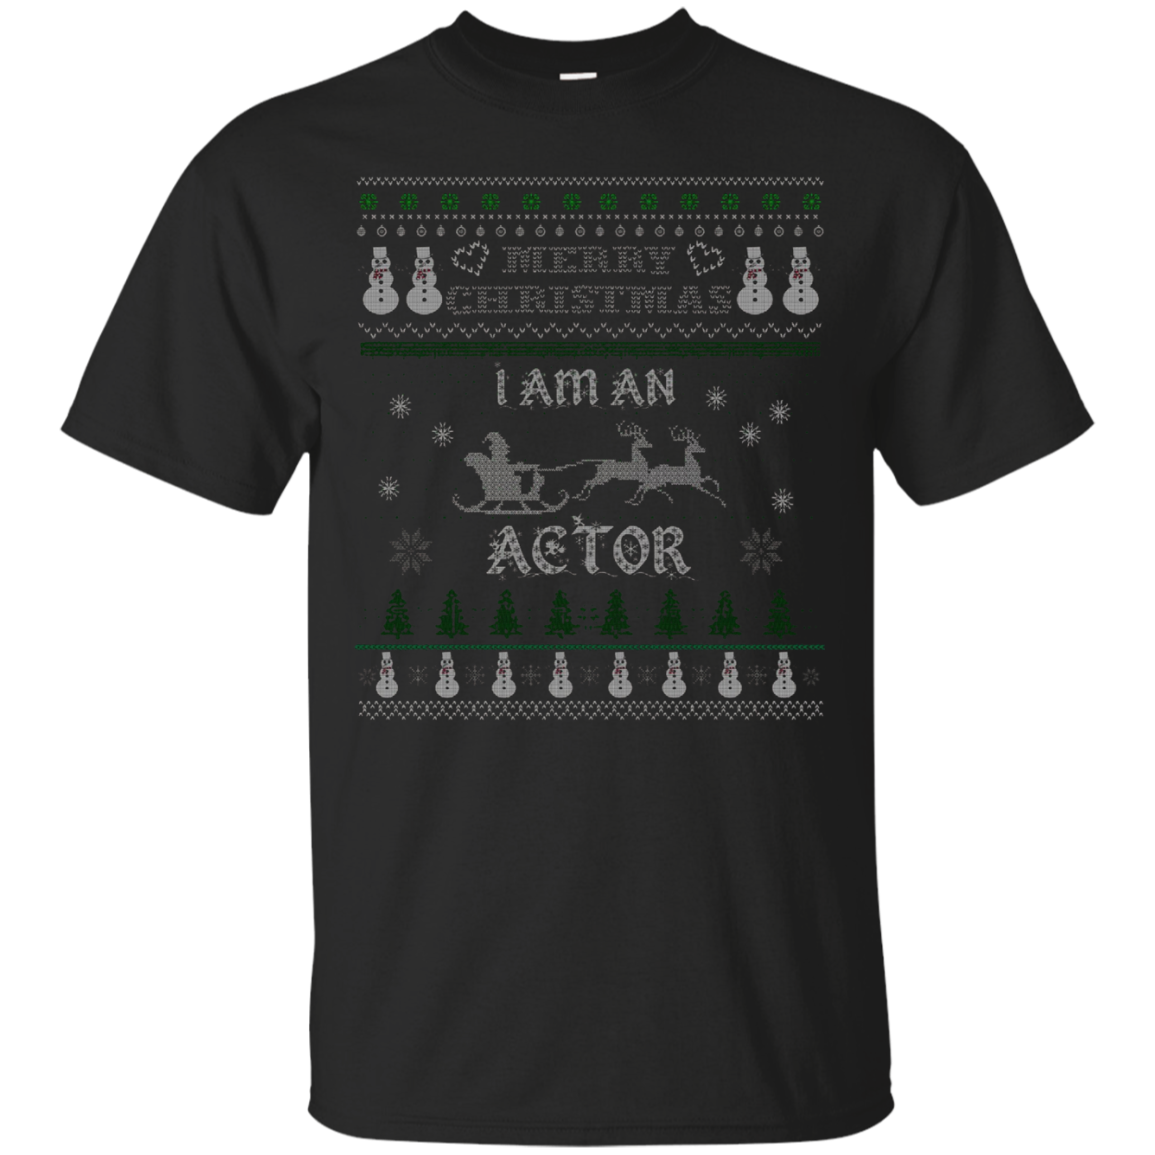 Actor Shirt Actors T Shirt Christmas Gift Women Men T-shirt